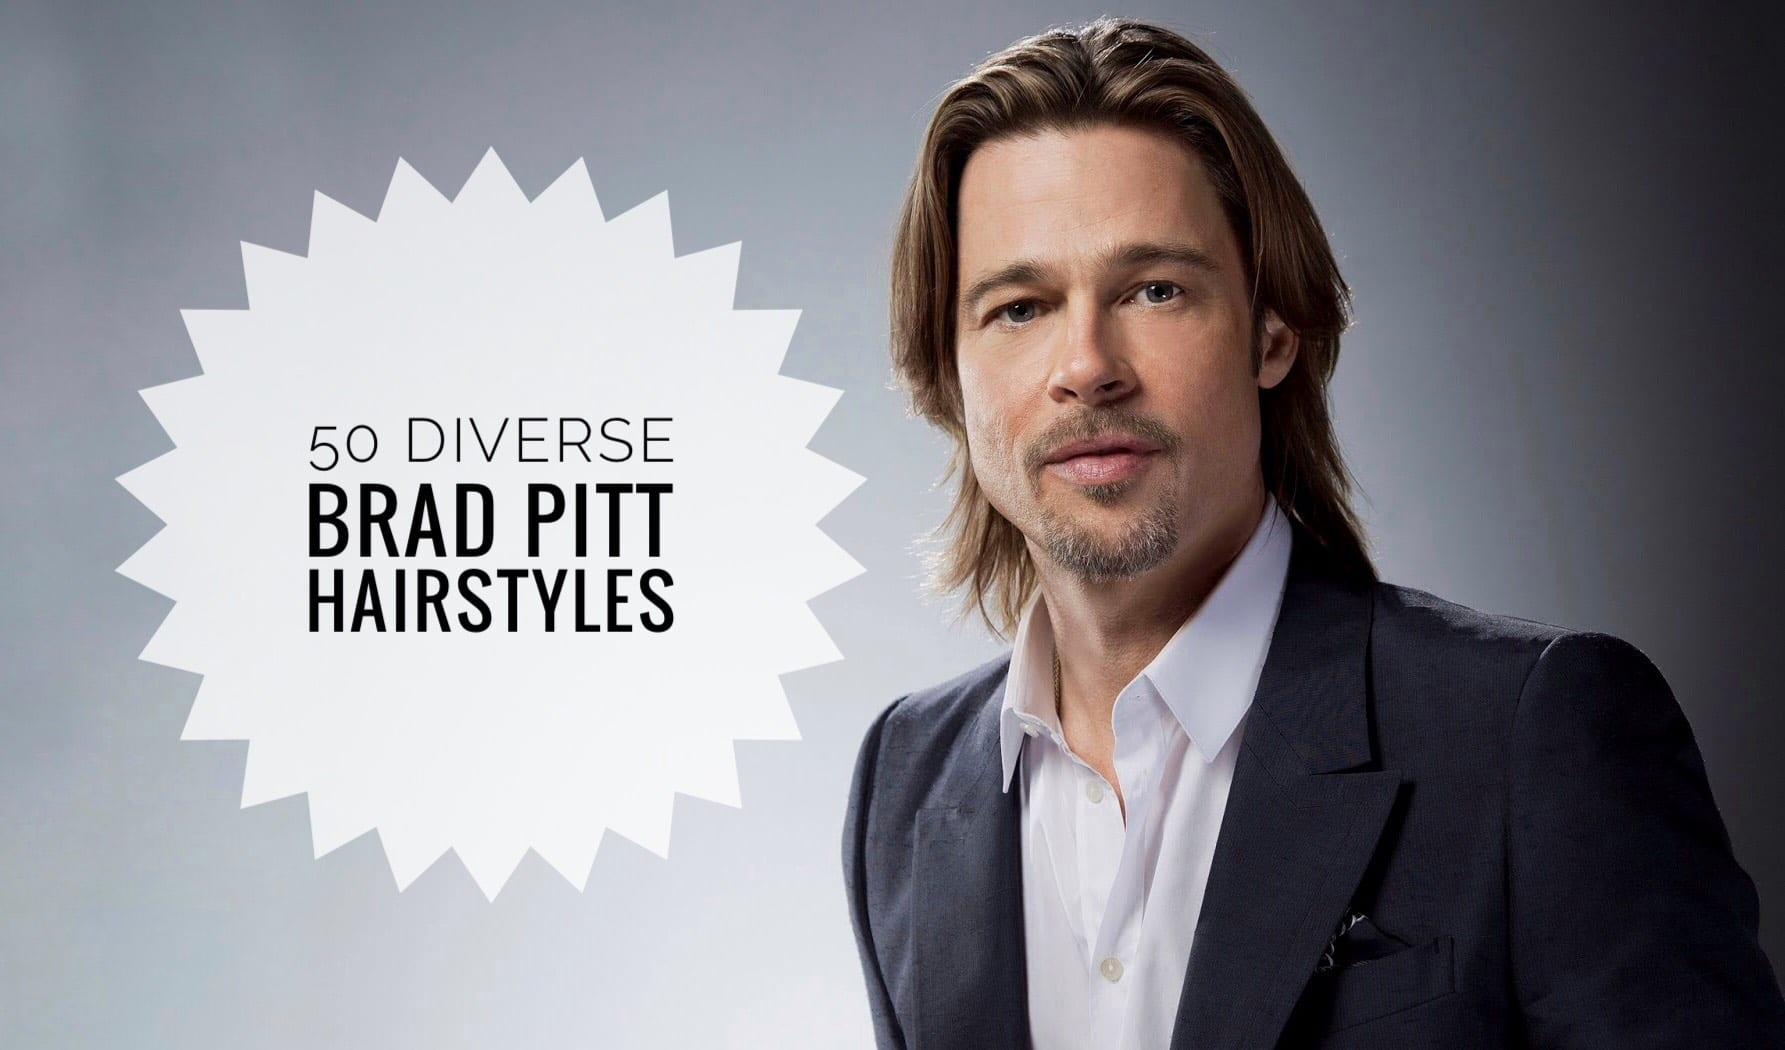 12 Diverse Brad Pitt Hairstyles for You to Try - Men Hairstyles World